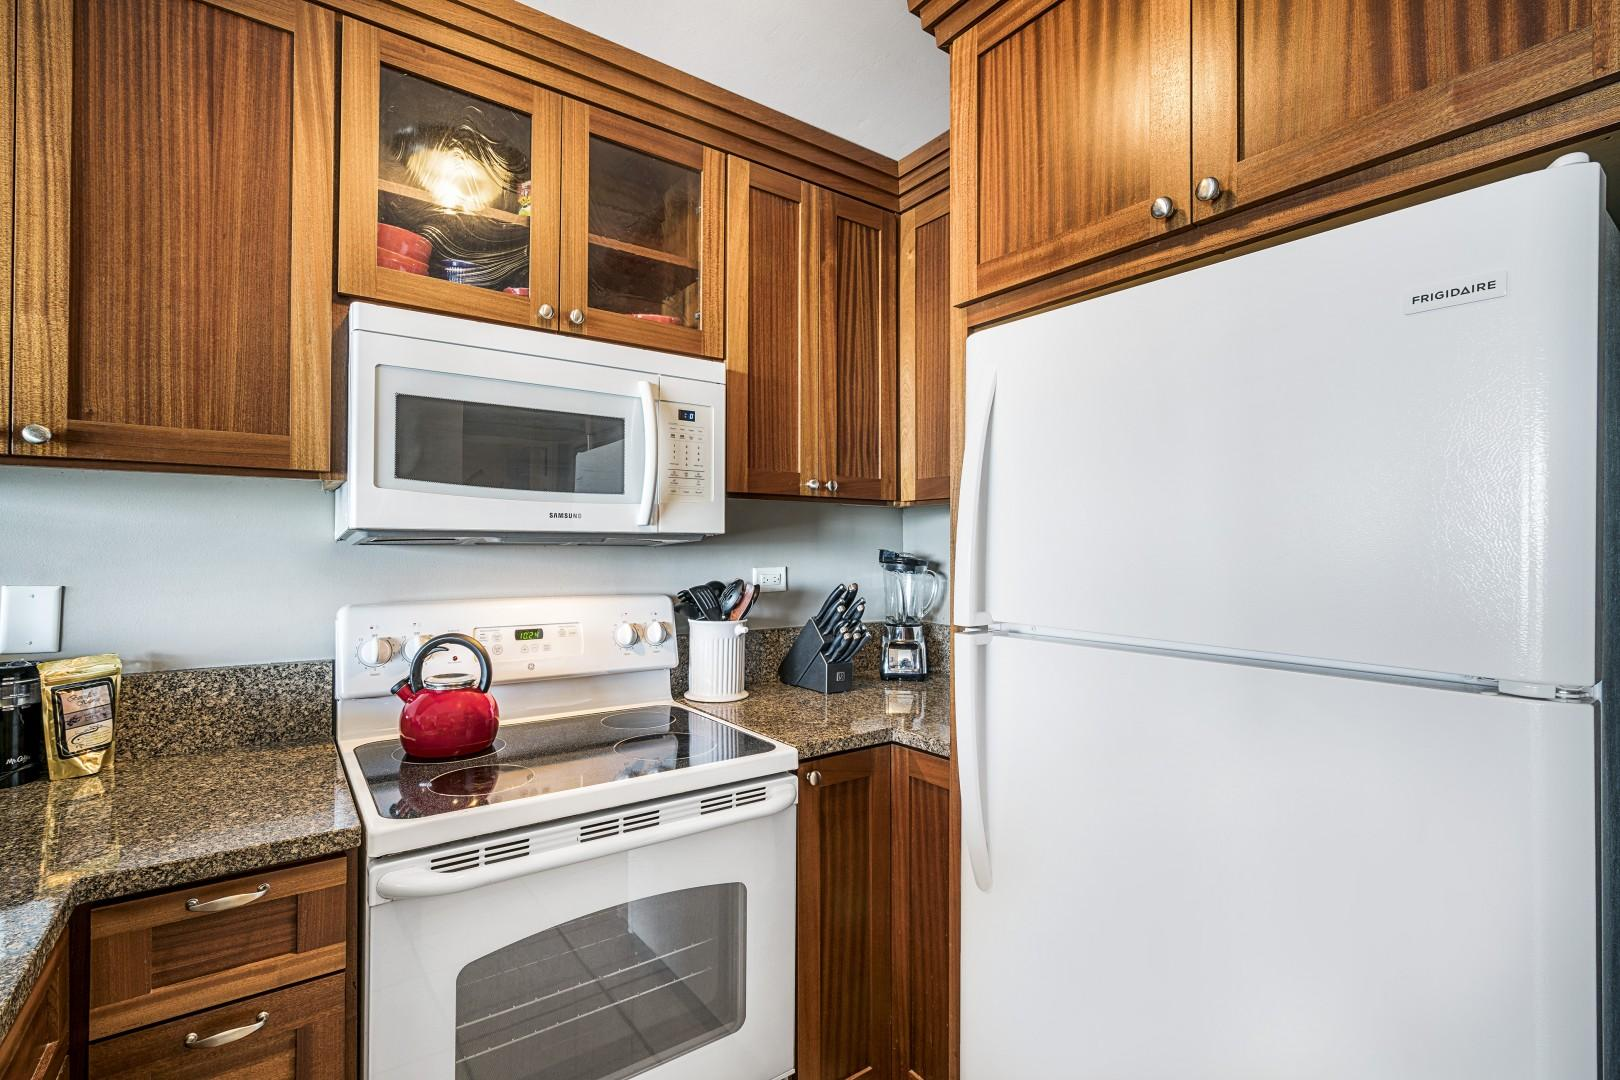 Updated appliances, granite counters, and cooking amenities